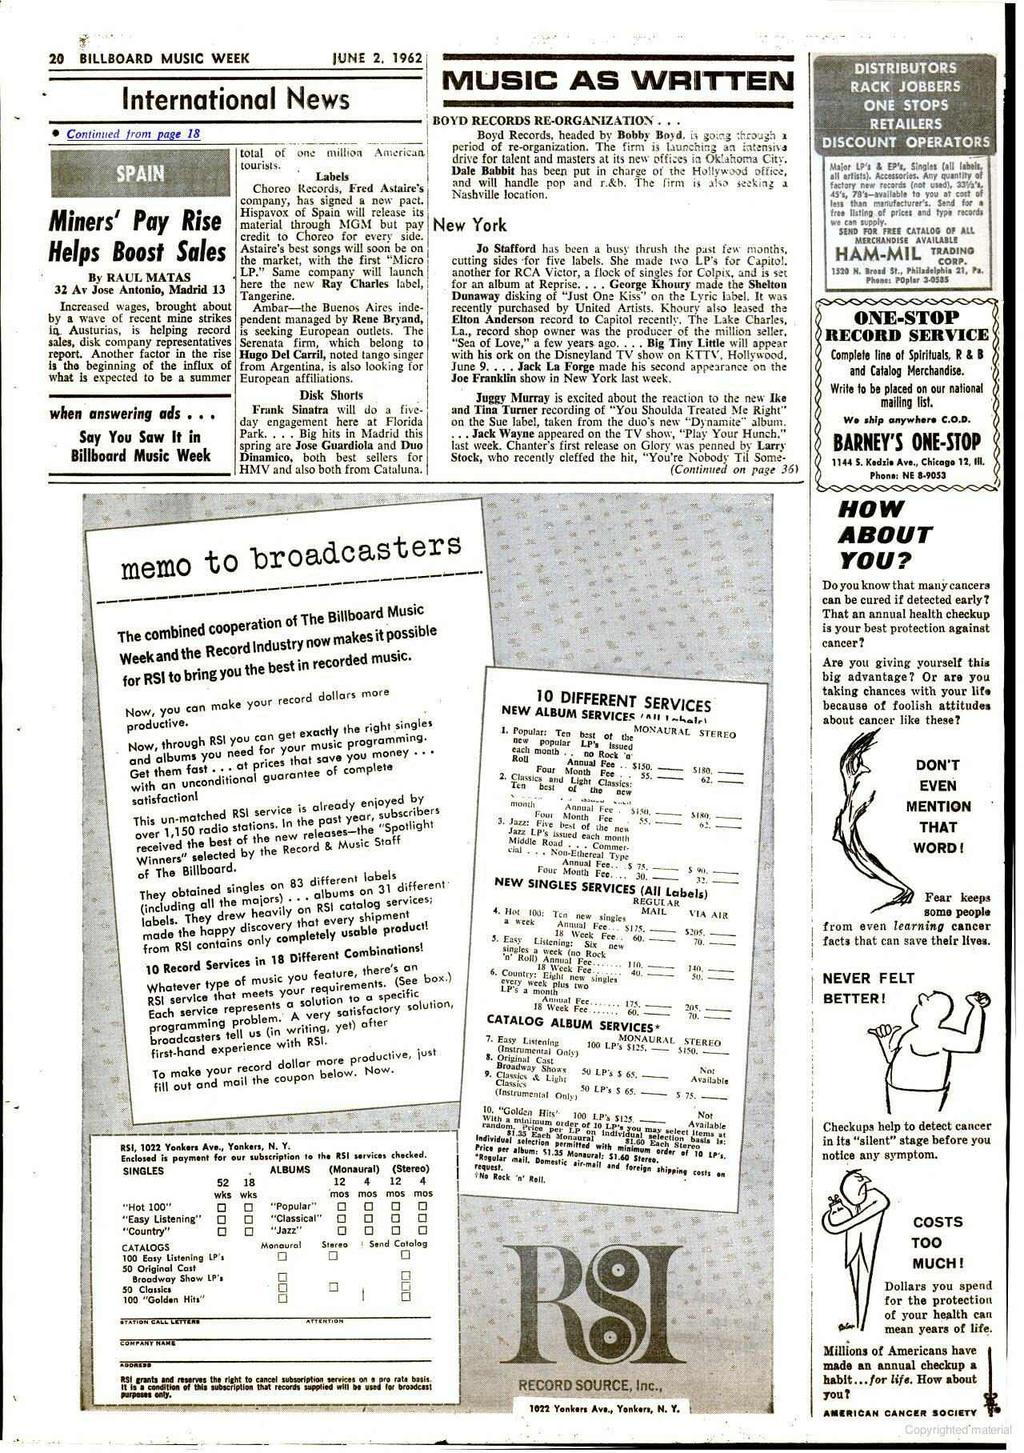 Wee N Music Phonograph Ndising Radio Tv Pro Amming Coin Machine Introduction To Electronics Dc Ac Circuits Stephen C Harsany 20 Billboard Week June 2 1962 International News Contained From Page 18 Miners